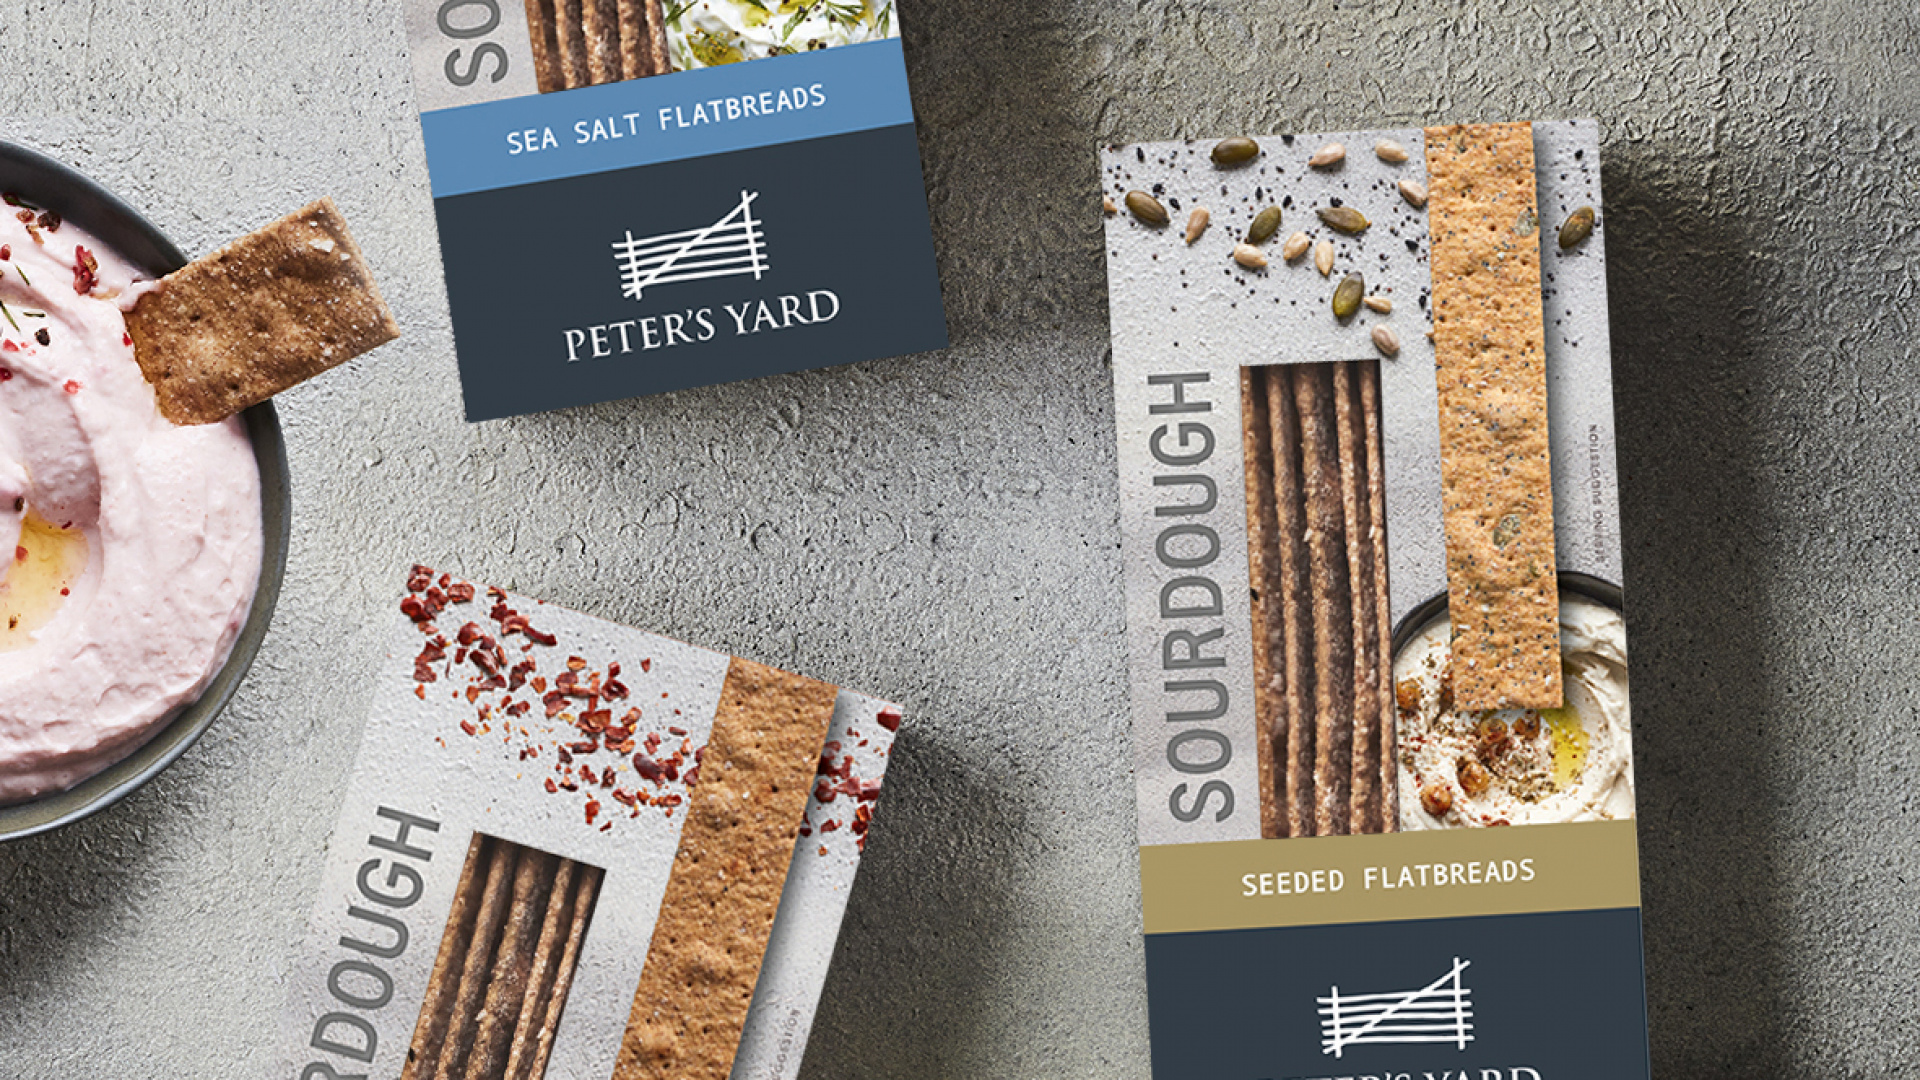 Peter's Yard Sourdough Crispbreads: A selection of their products